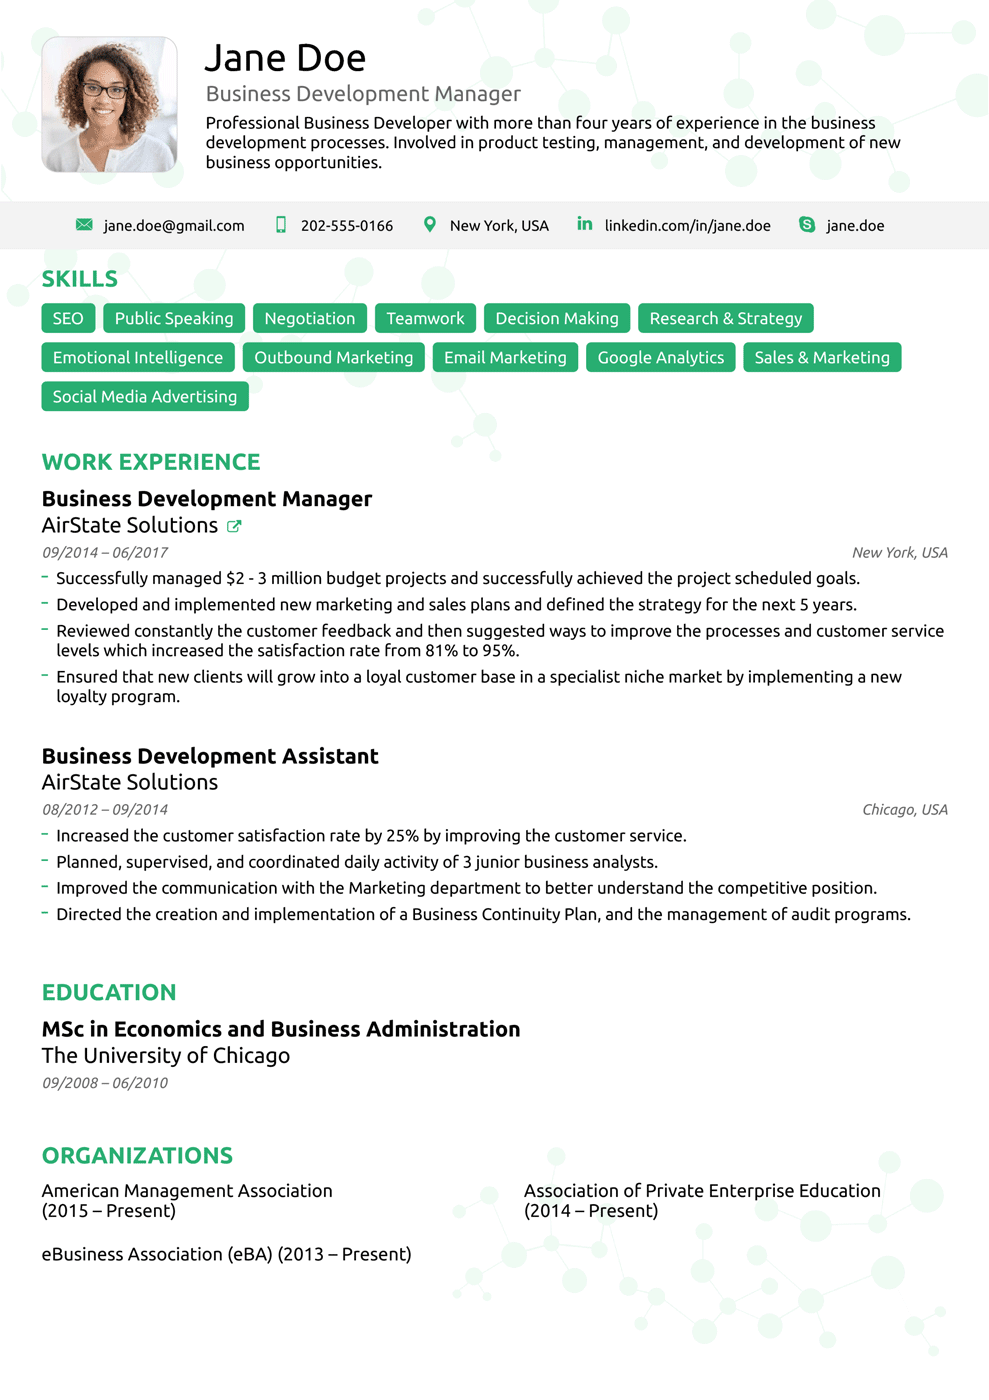 executive resume template - Resume Templates 2018